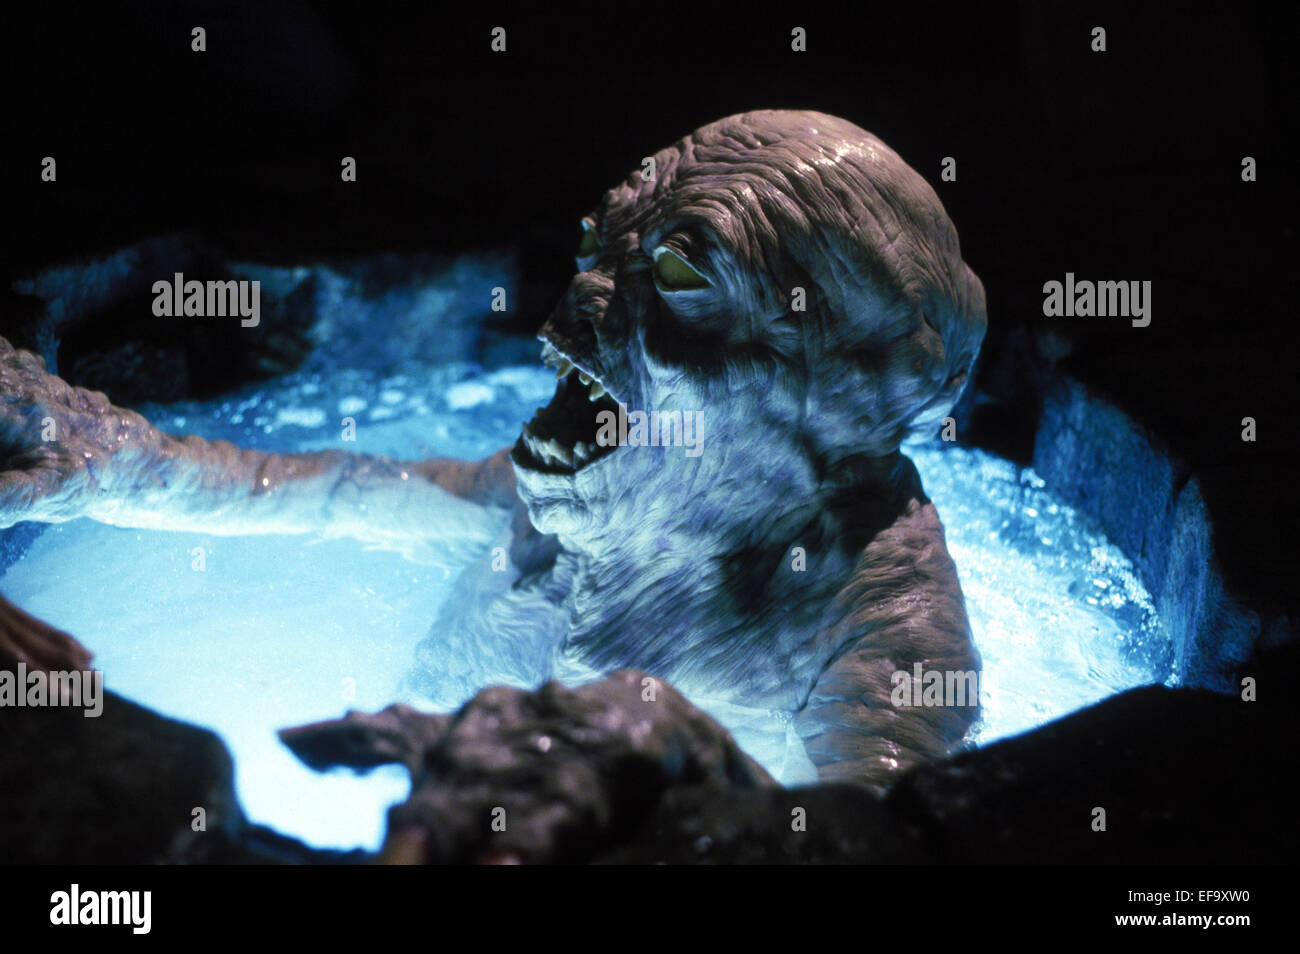 Amityville 3 High Resolution Stock Photography and Images - Alamy